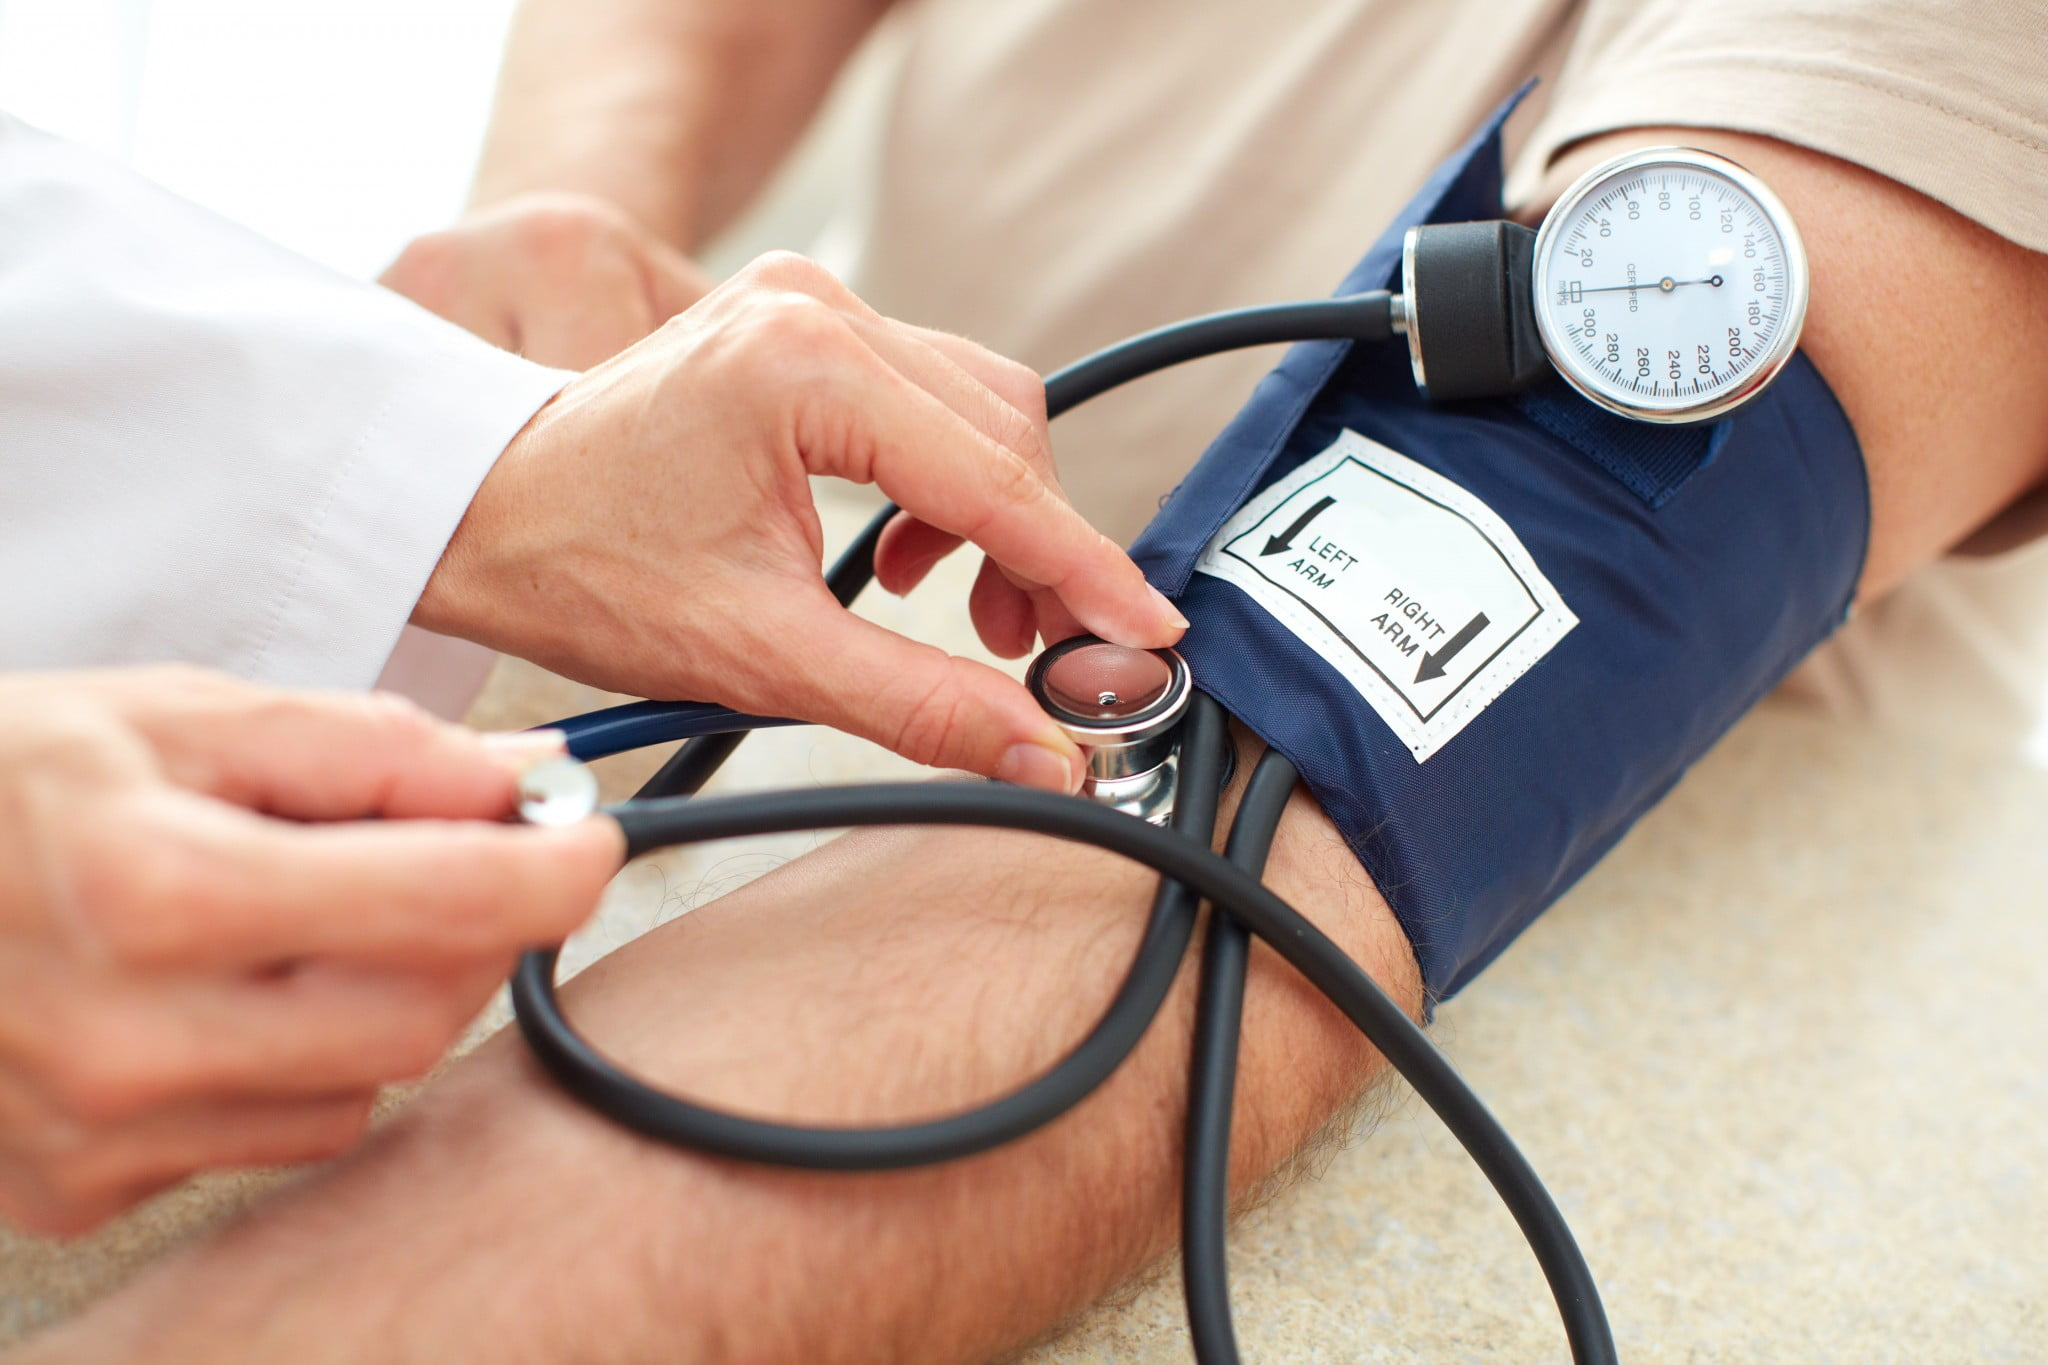 High blood pressure leaves one in 3 at risk of stroke